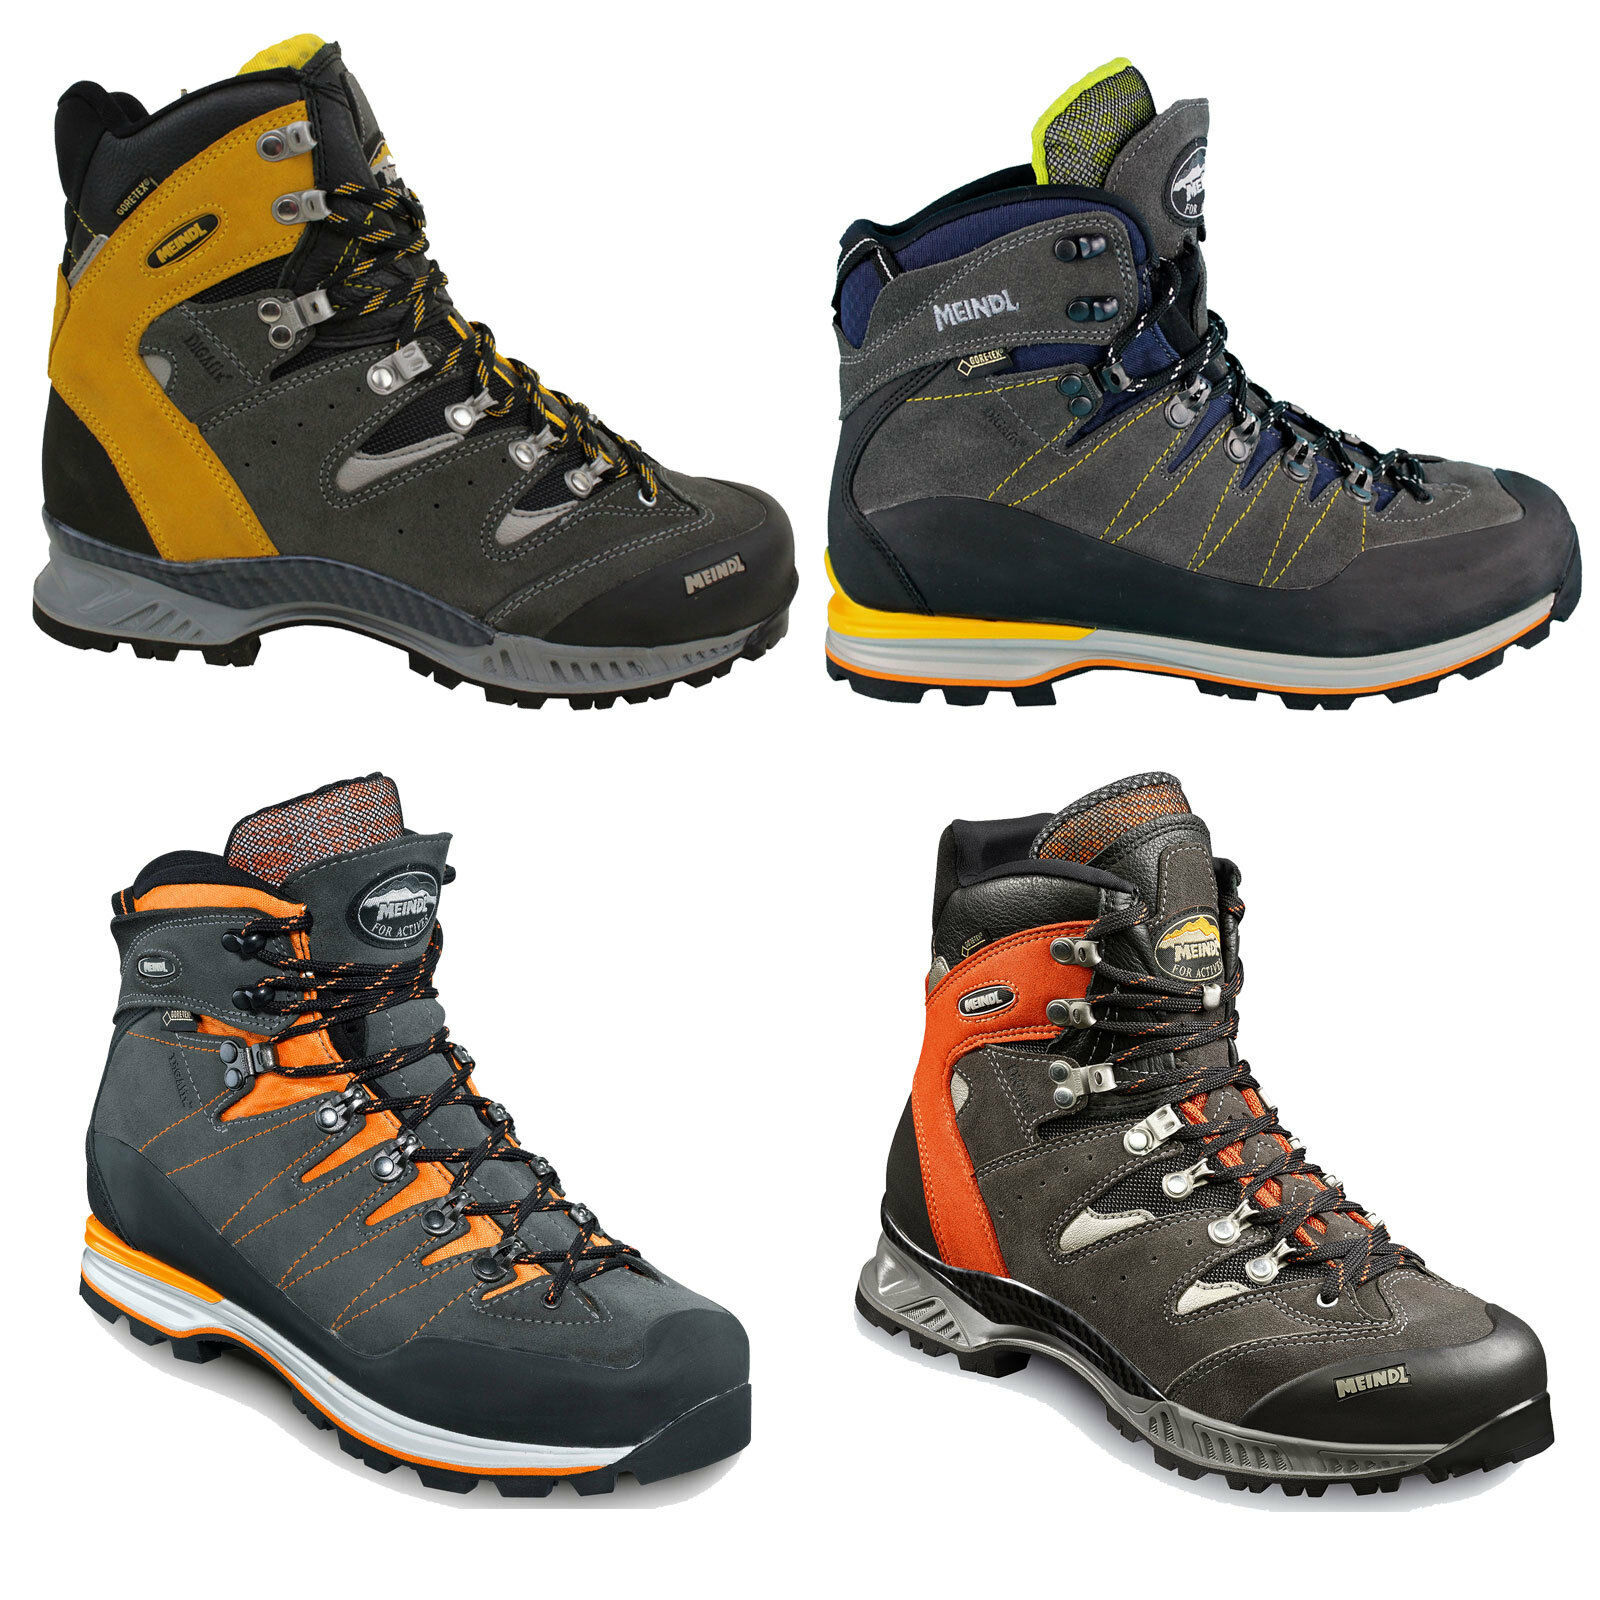 Meindl Air Revolution Men's Hiking Boots Trekking shoes shoes Lace-Up shoes New